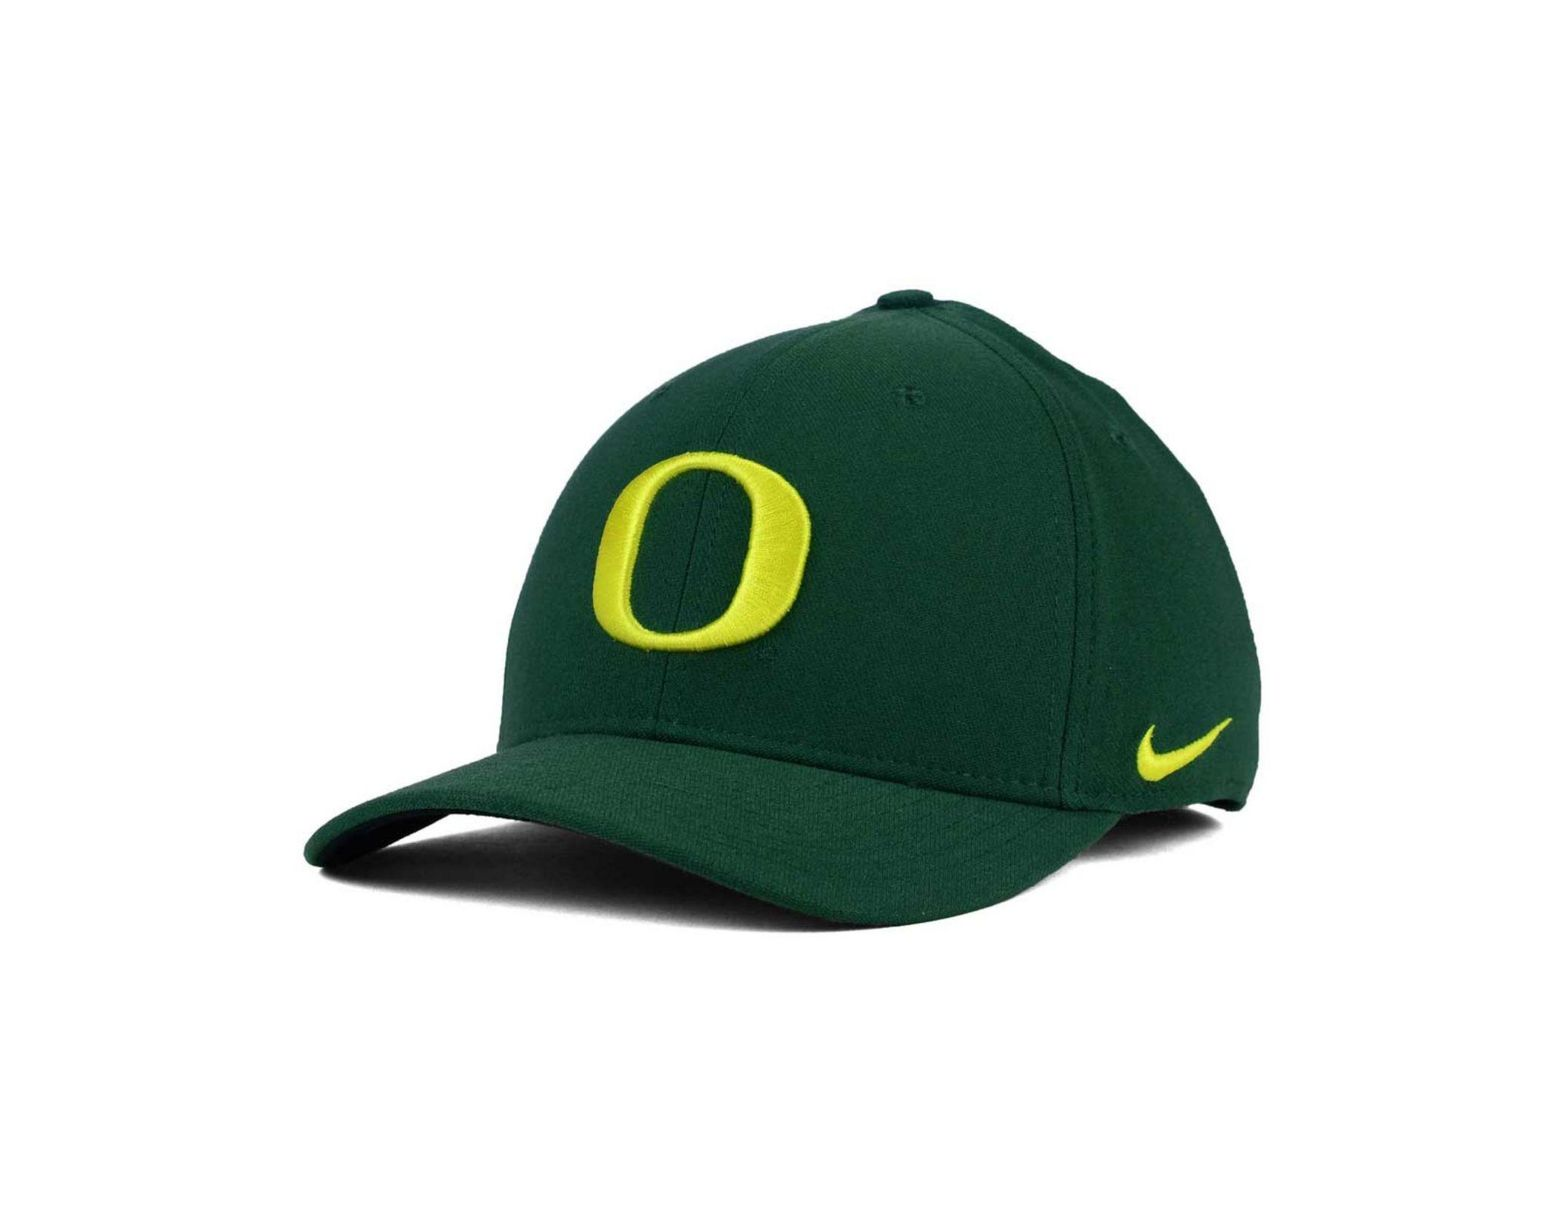 sports shoes 44599 6ad08 Nike Oregon Ducks Aerobill True Fitted Baseball Cap in Green for Men - Save  29% - Lyst